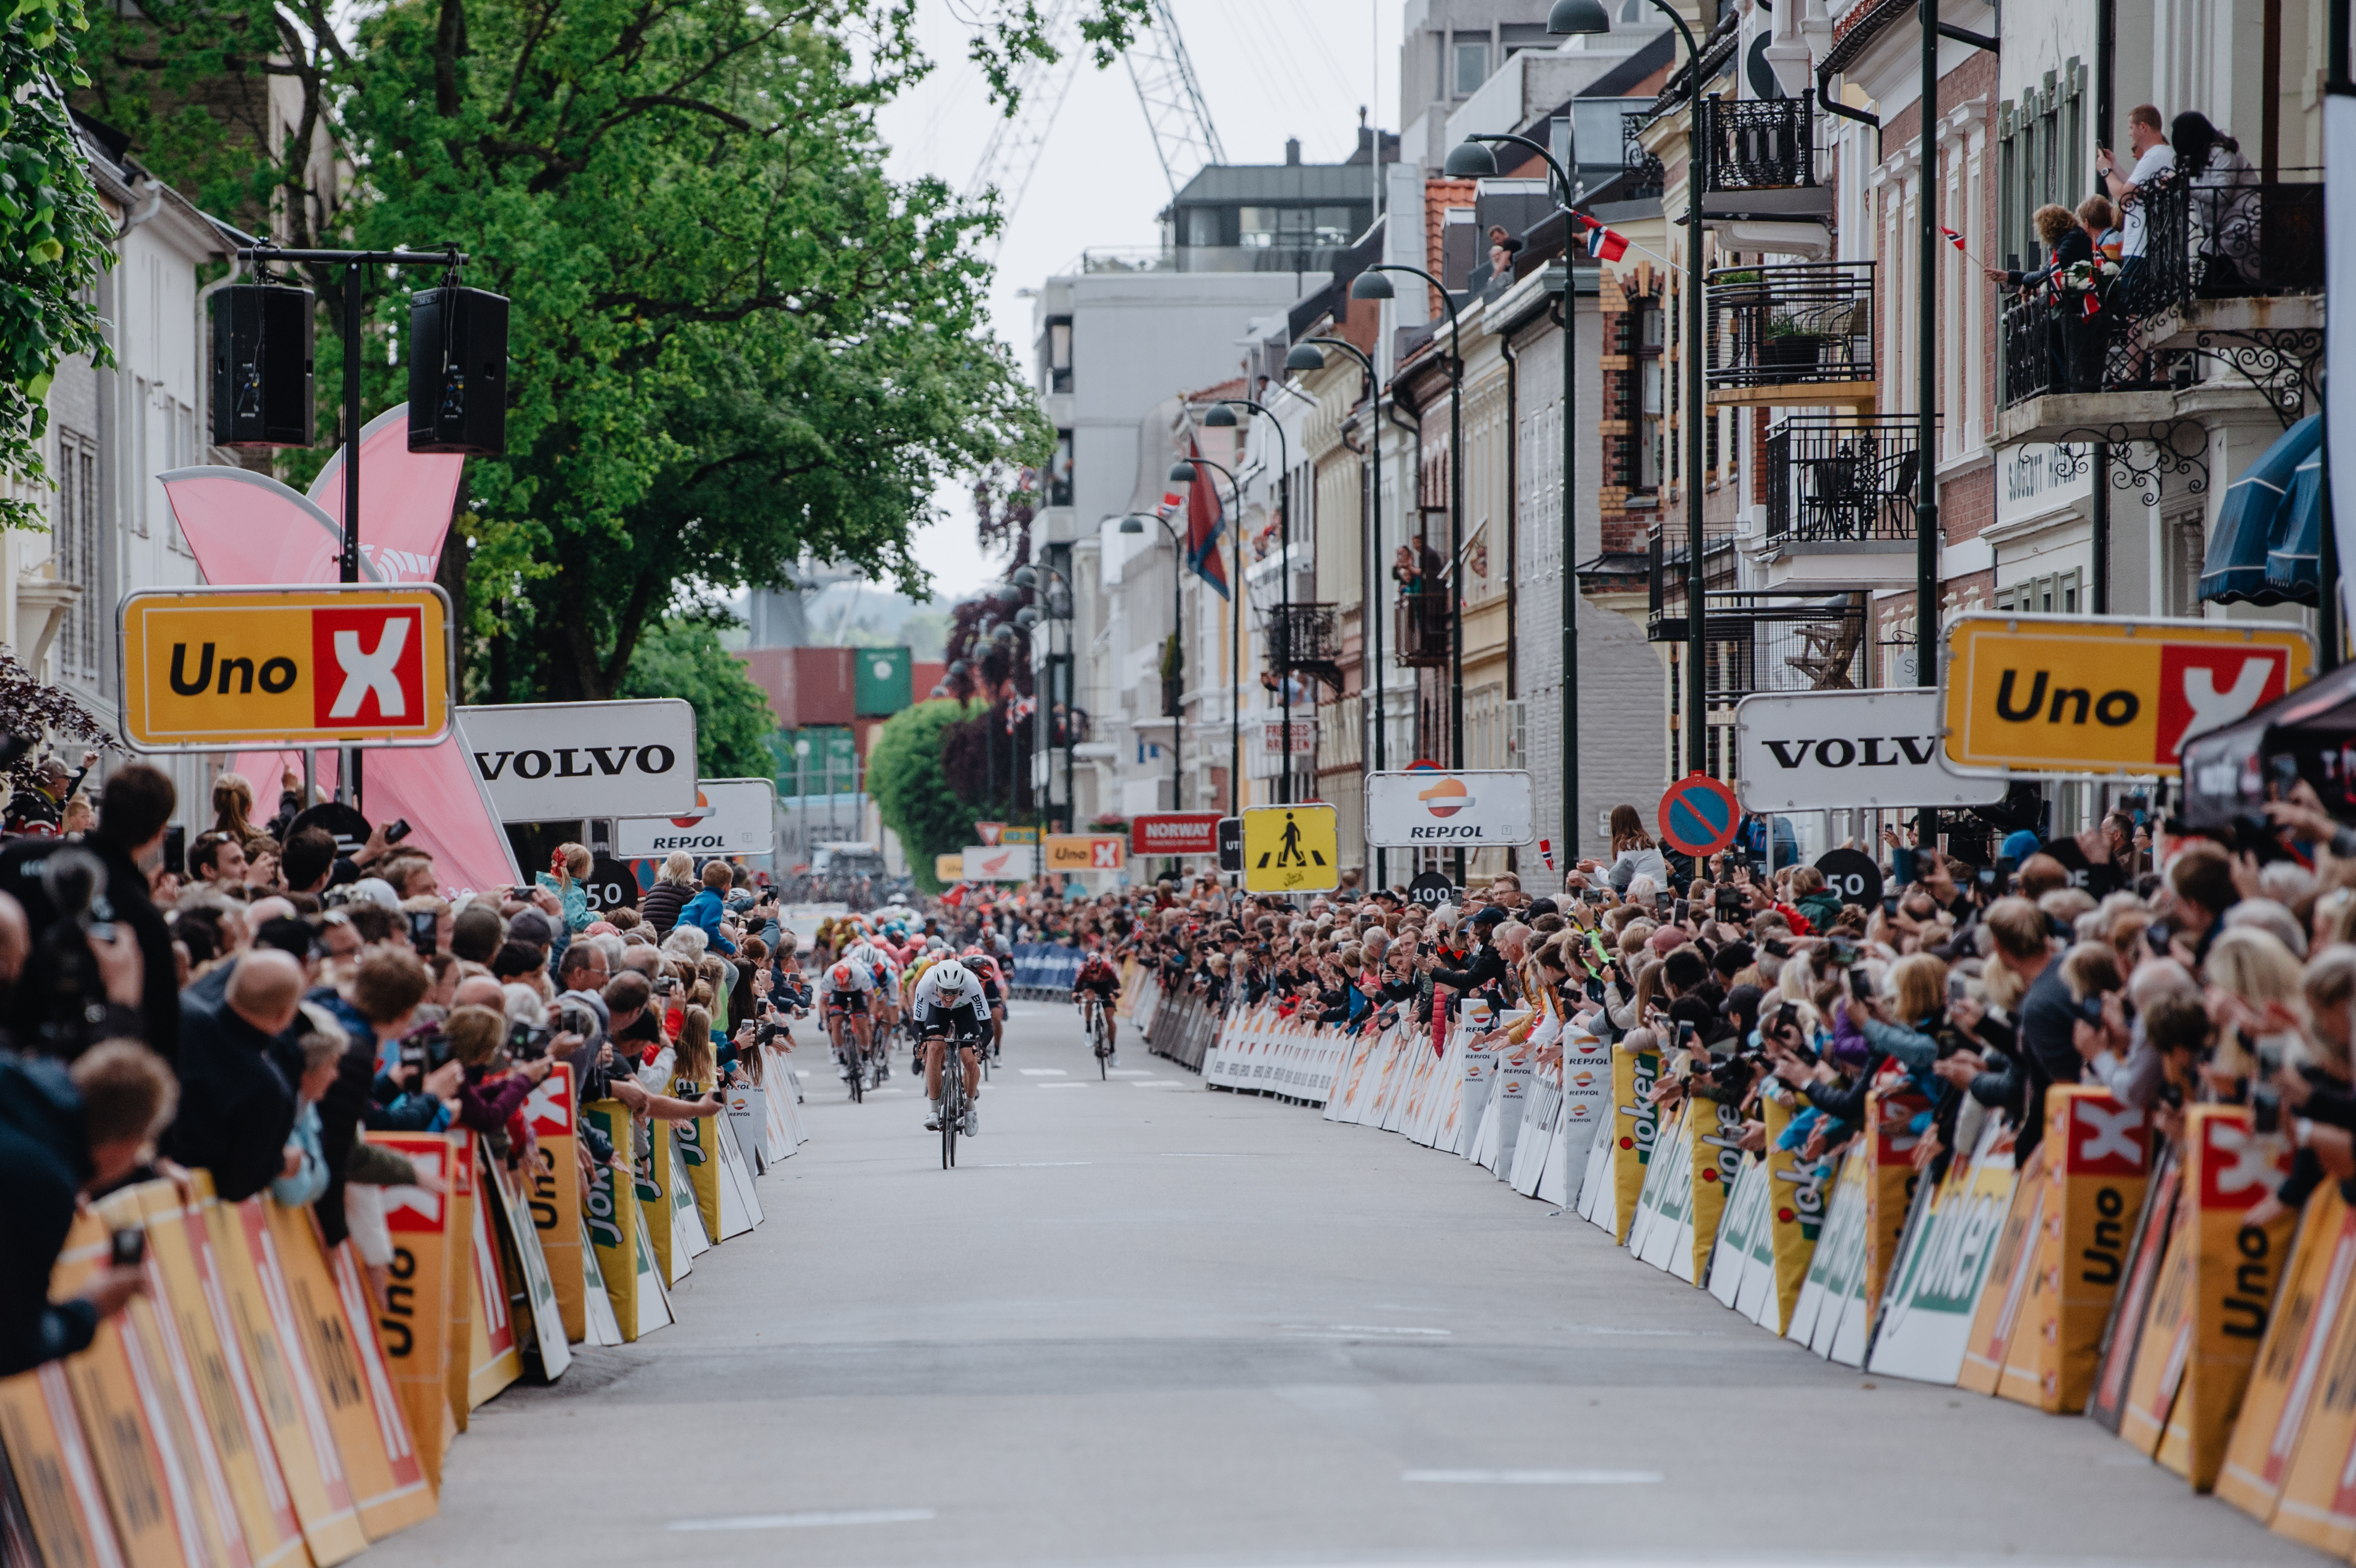 Tour of Norway 2020 won't take place, the focus is now on Tour of Norway 2021